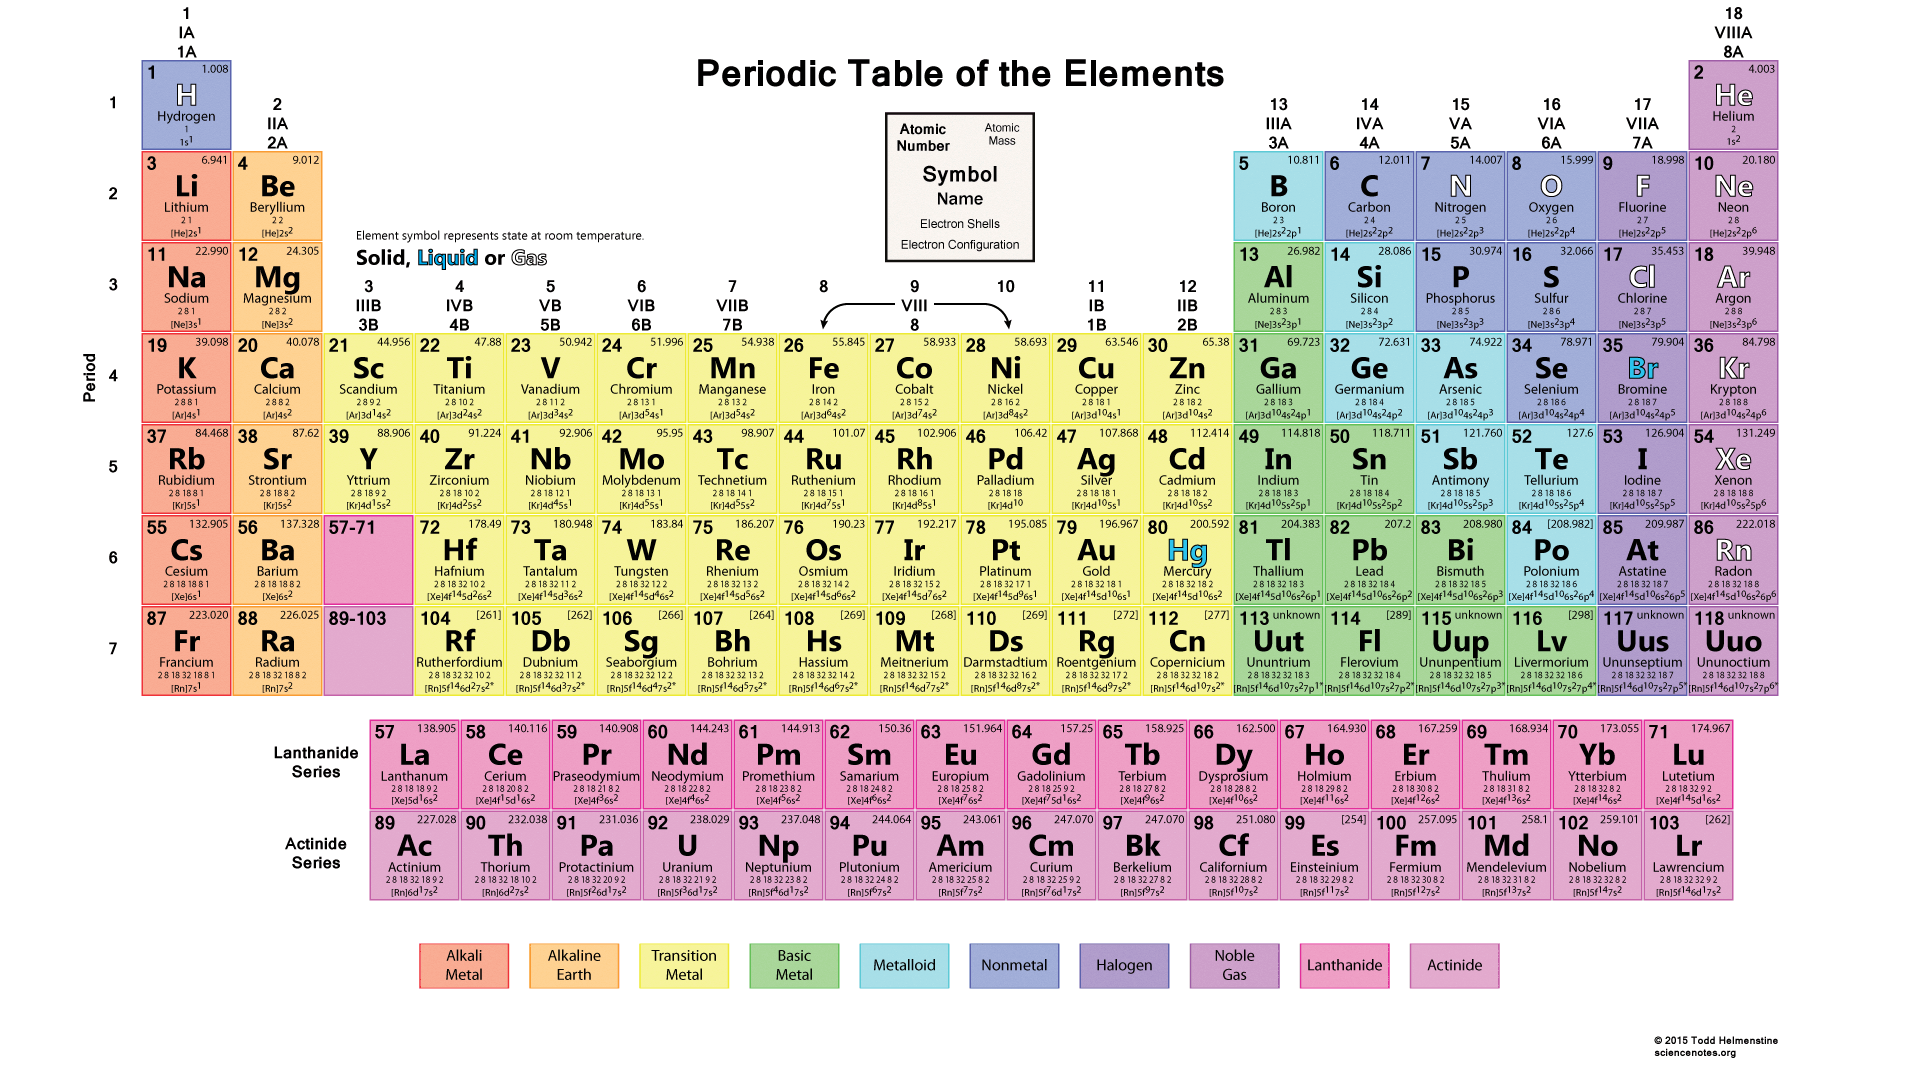 In what order are the elements of the periodic table arranged sciencenotes gamestrikefo Gallery